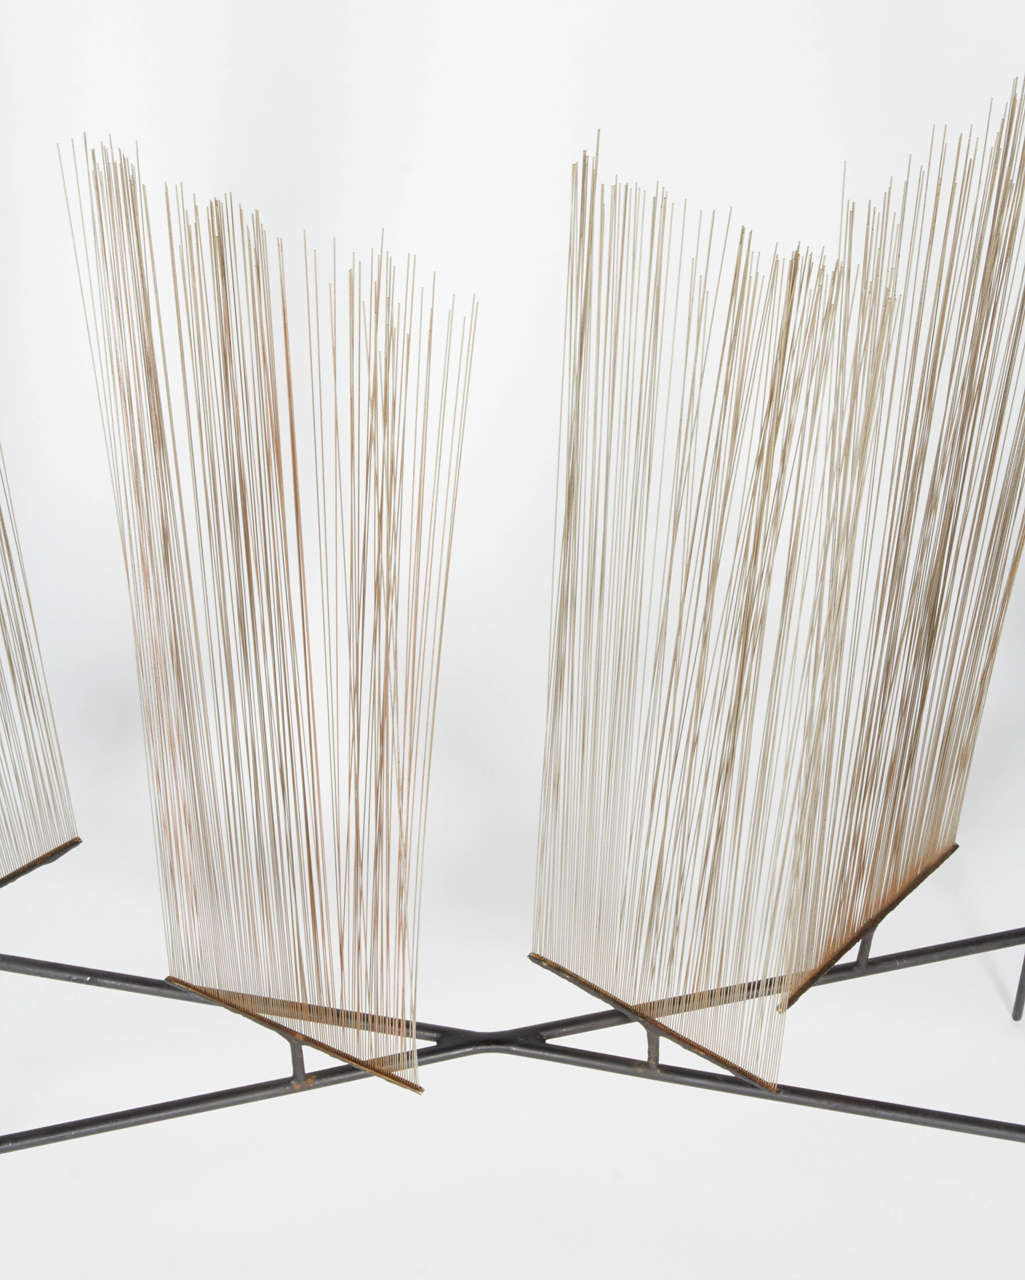 Harry Bertoia Early Wire Form Sculpture, Untitled 3